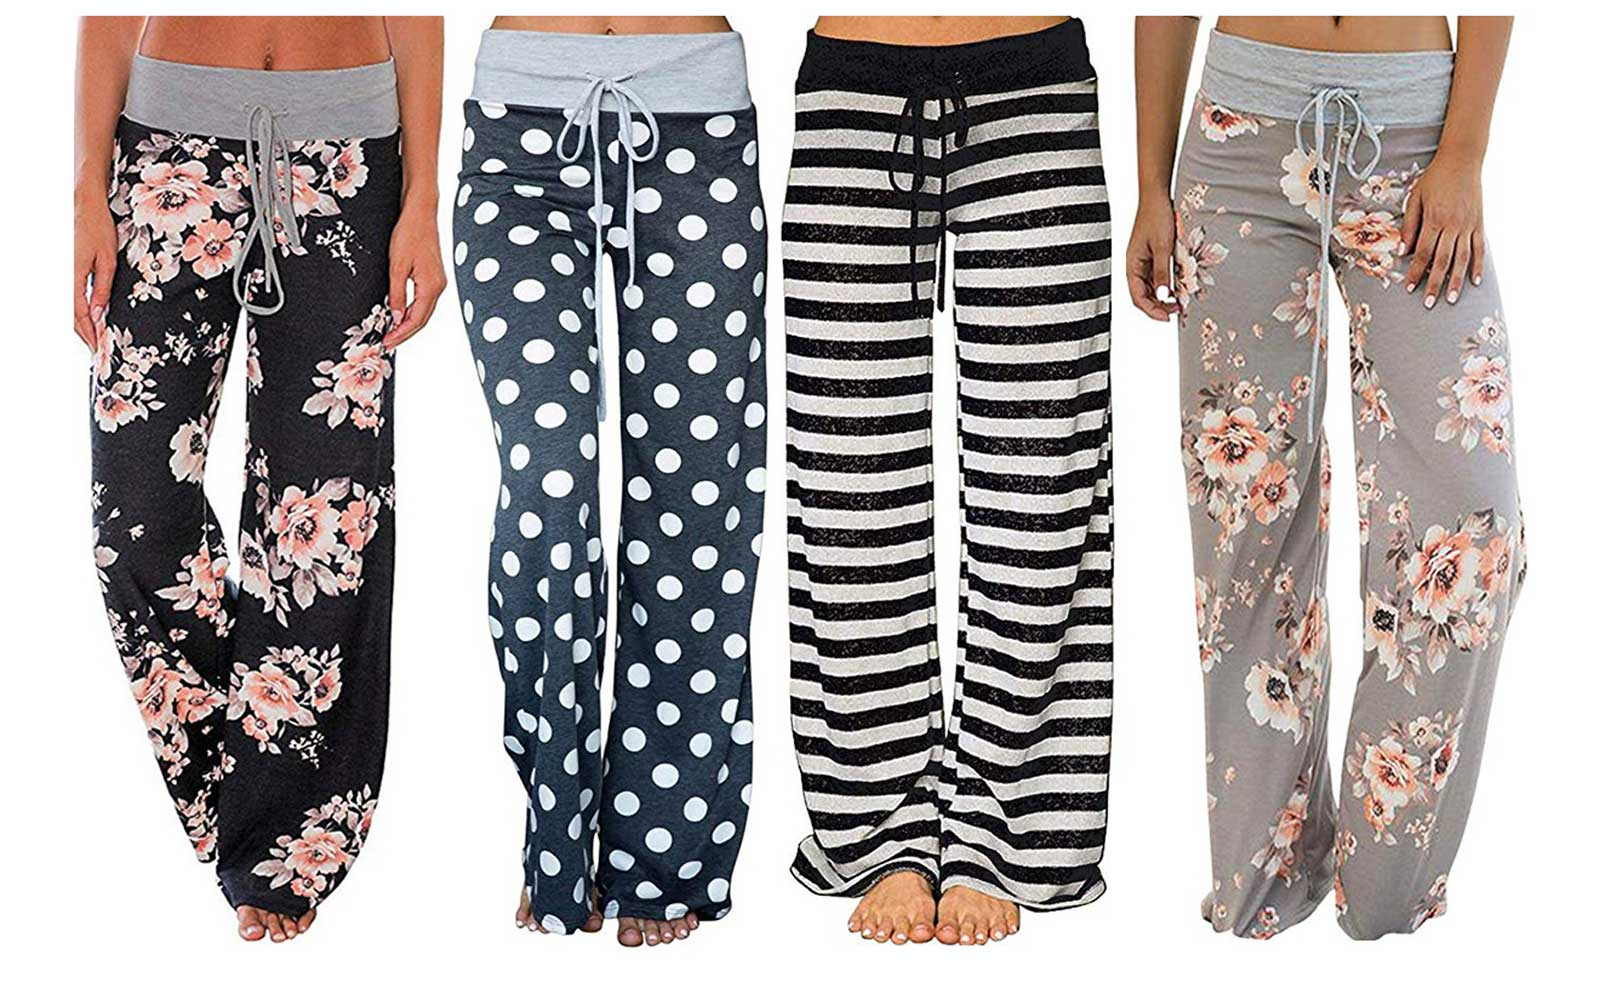 These Cute and Comfy Lounge Pants Have More Than 2,000 Rave Reviews on Amazon — and They Start at $8